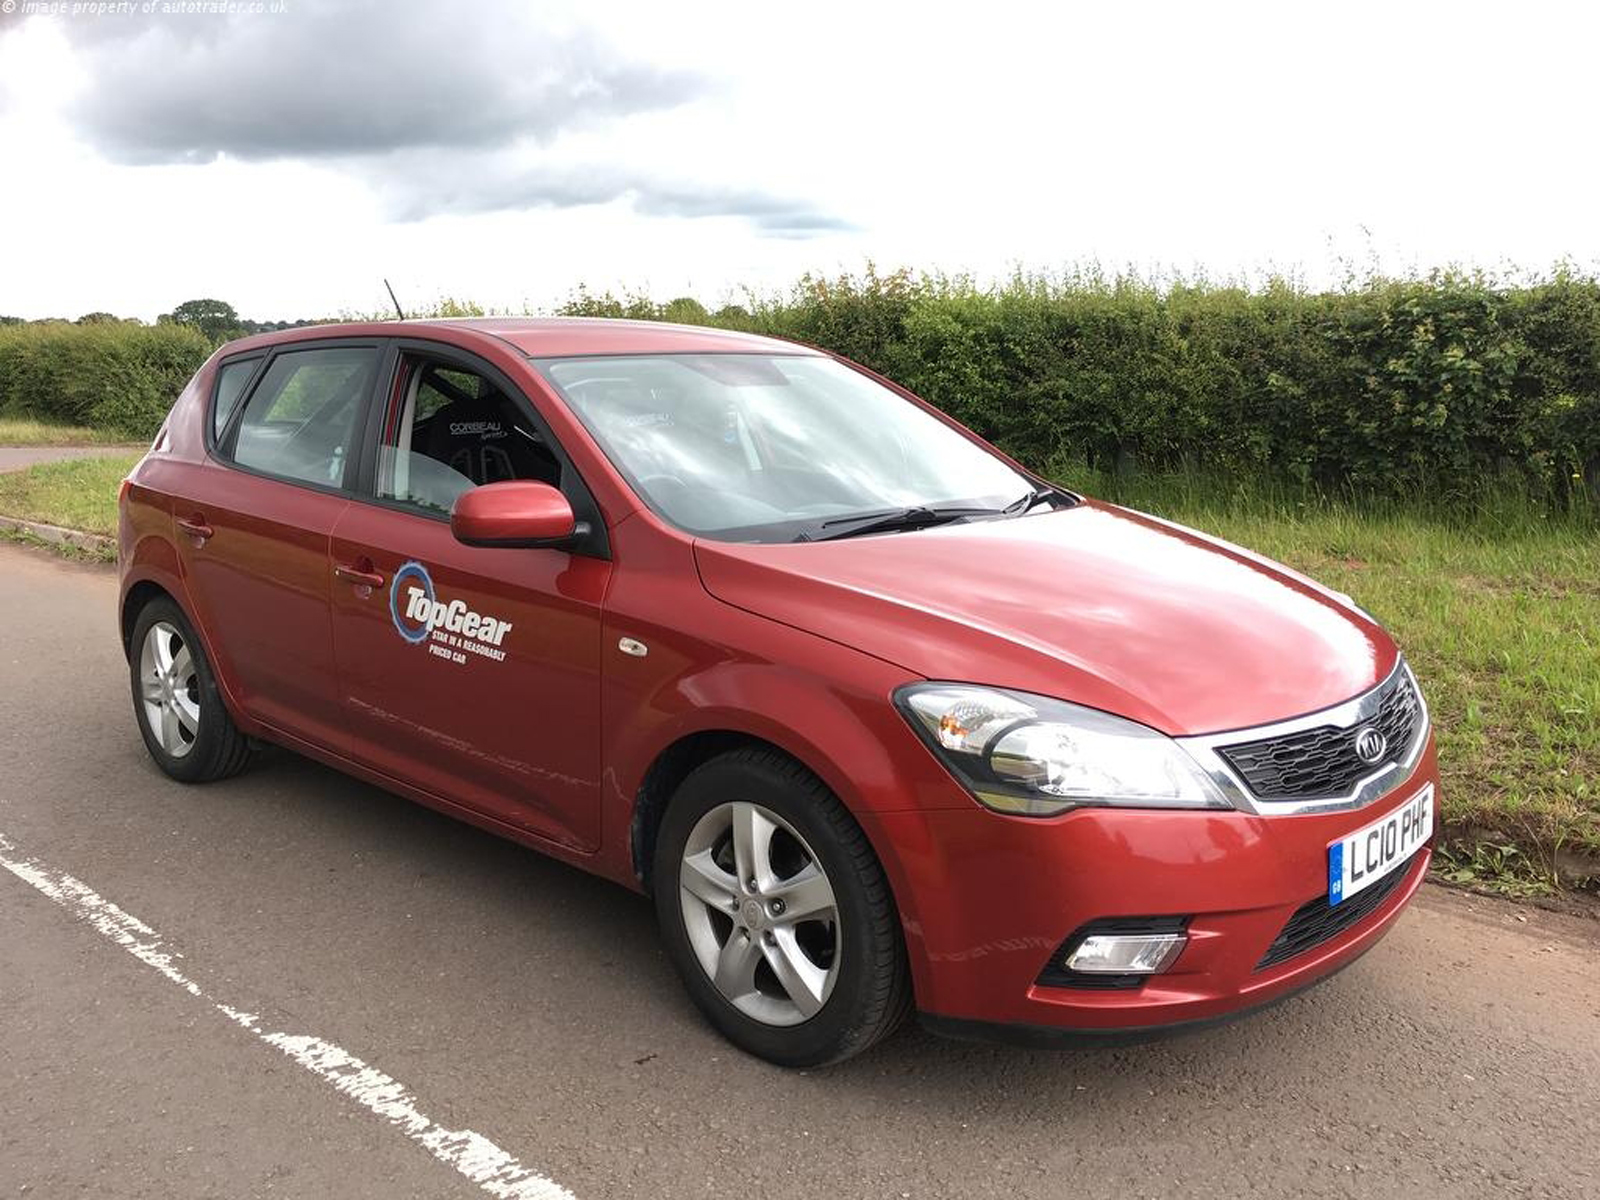 top gear s old reasonably priced kia is for sale